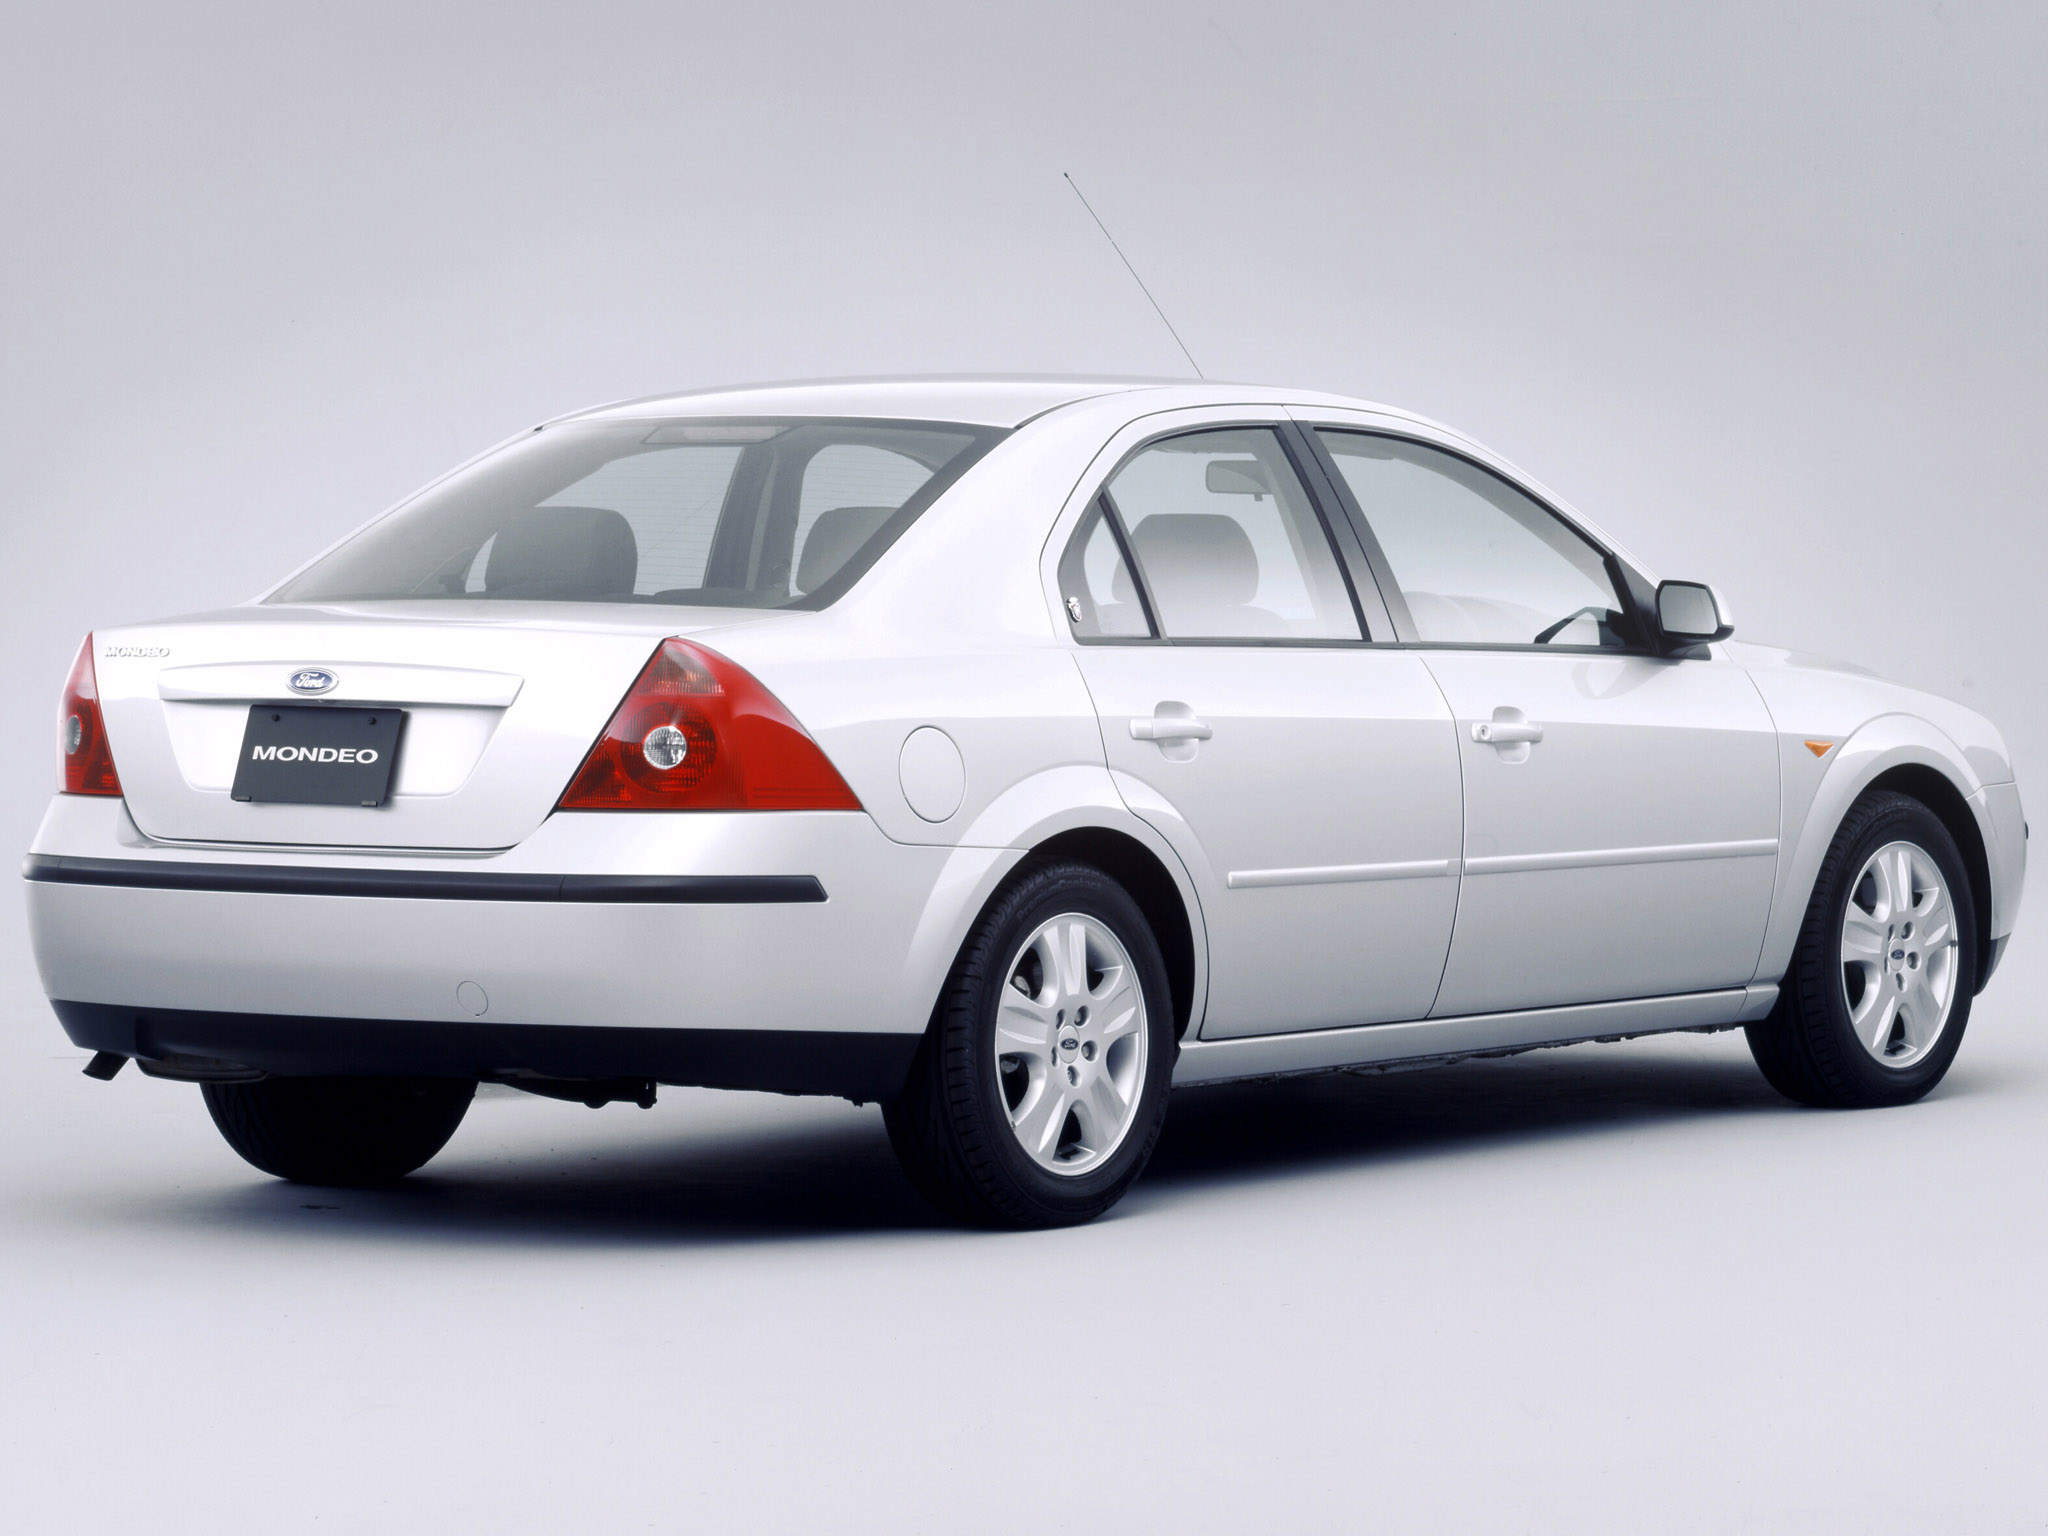 ford mondeo sedan japan 2000 2004 ford mondeo sedan japan 2000 2004 photo 01 car in pictures. Black Bedroom Furniture Sets. Home Design Ideas